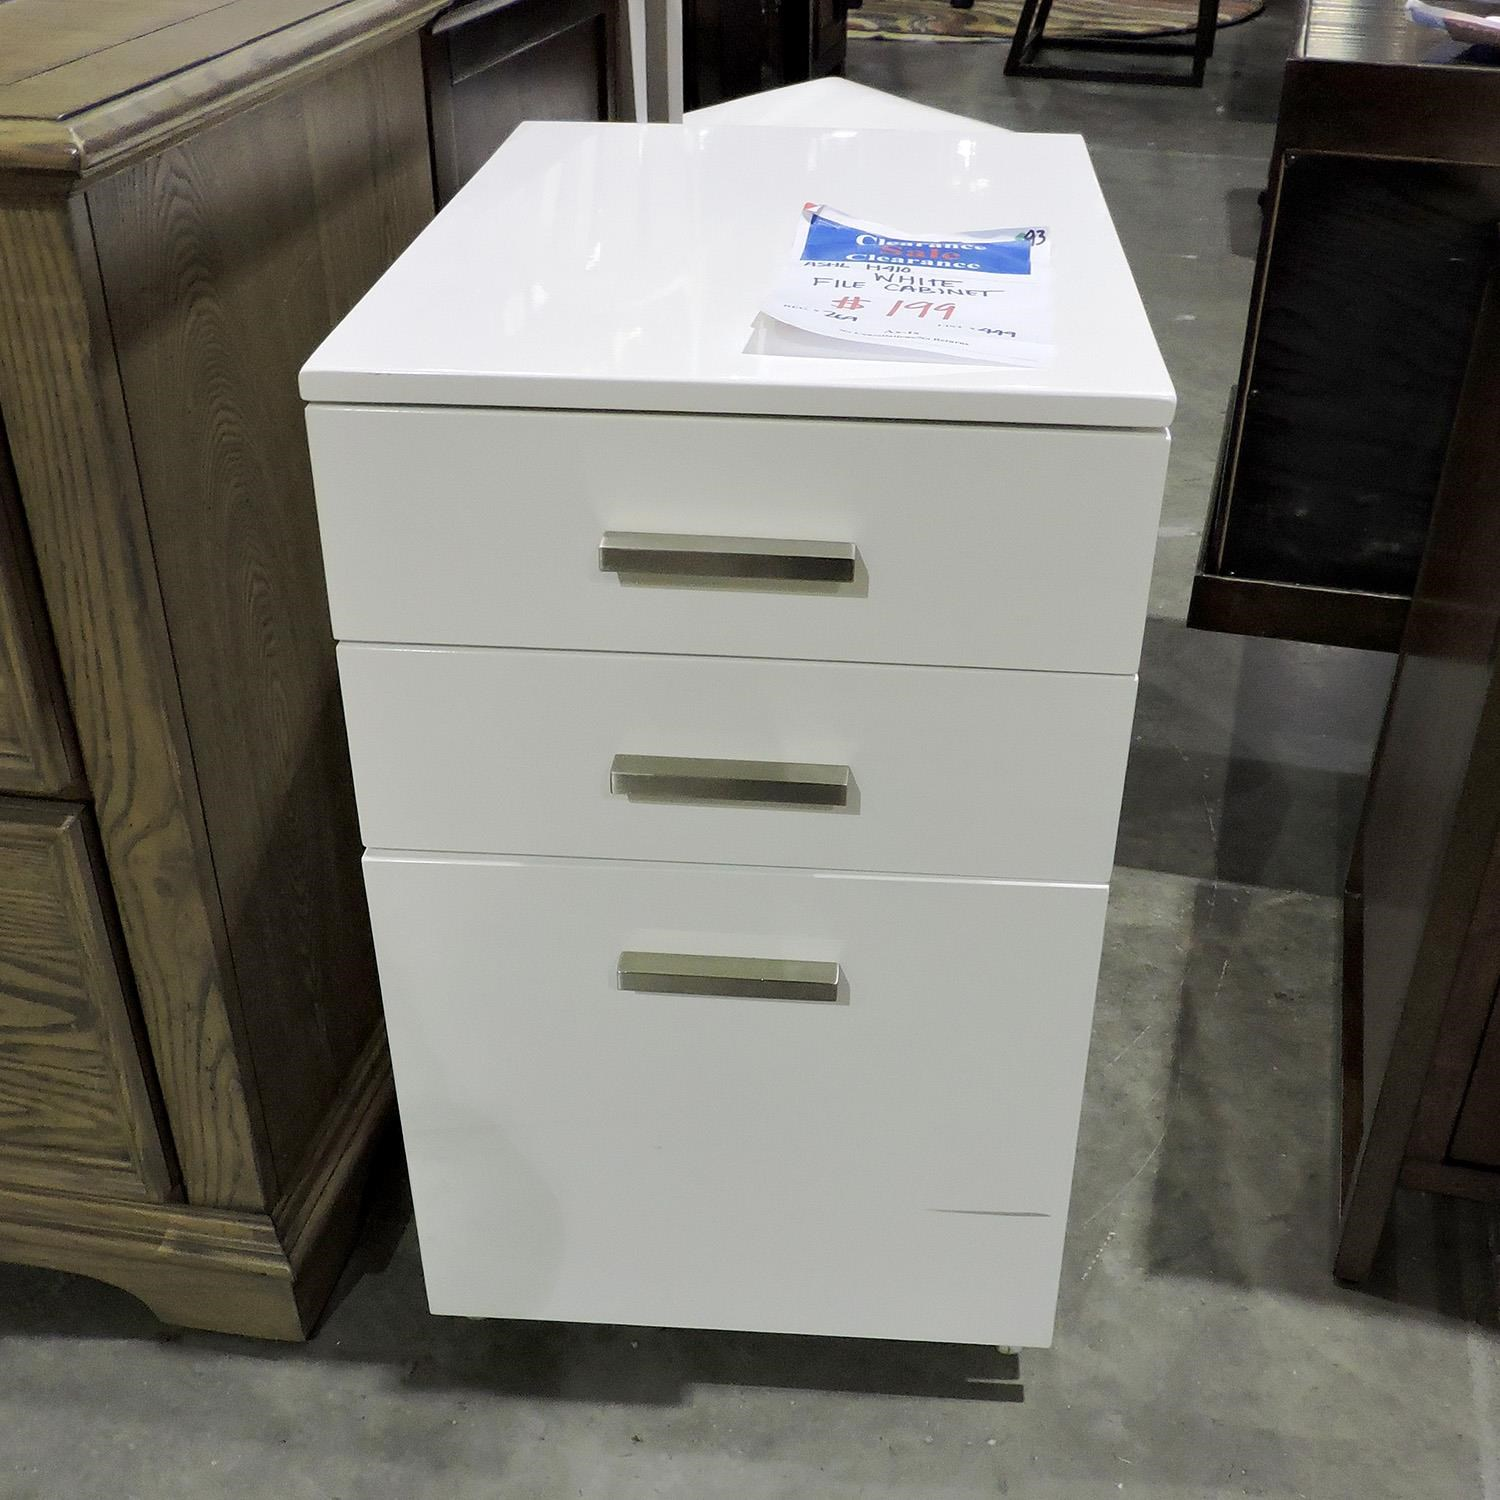 Ashley Furniture Clearance White File Cabinet - Item Number: 404758499